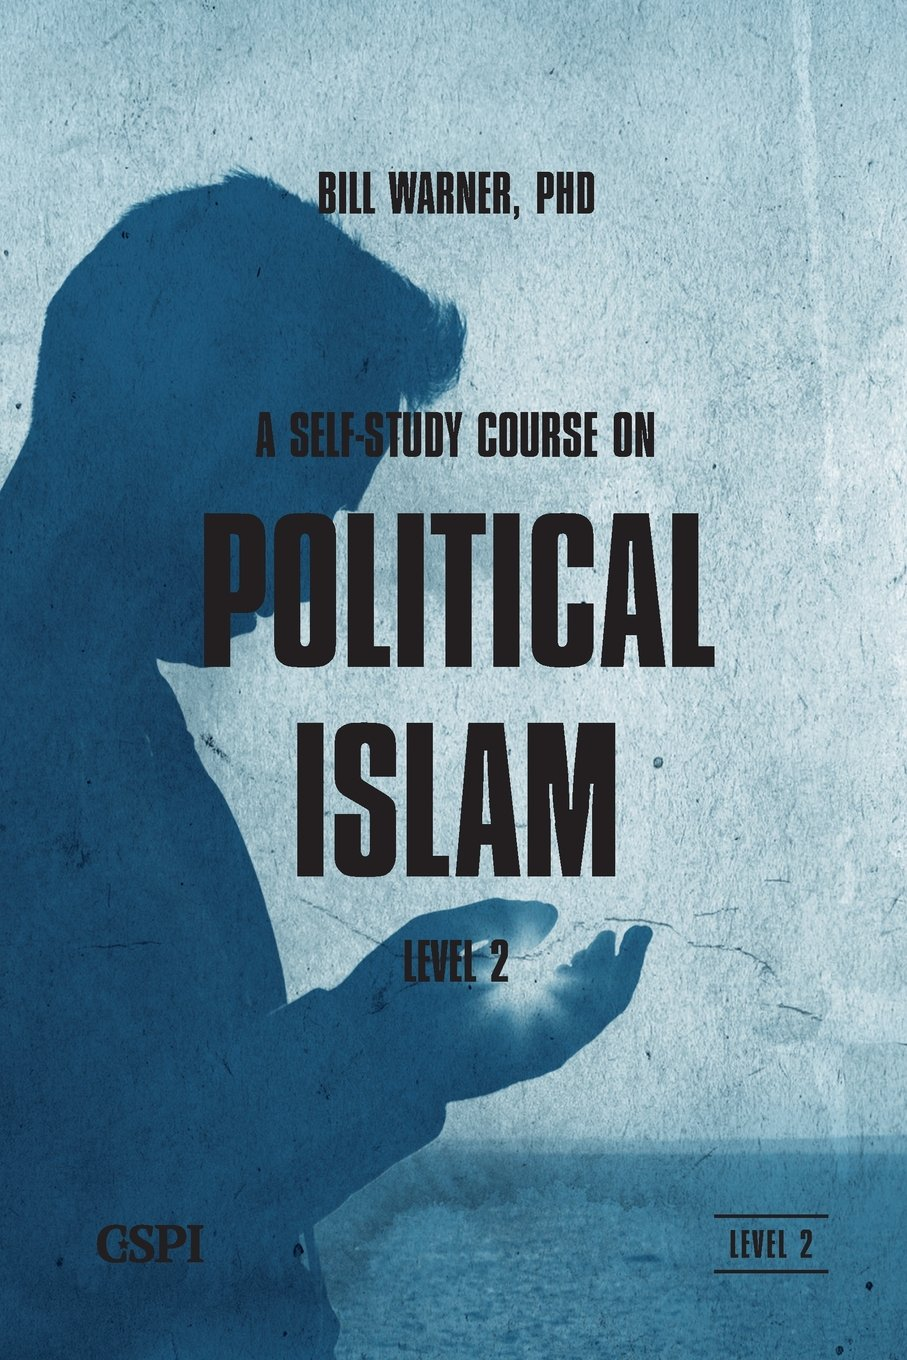 A Self-Study Course on Political Islam Level 2